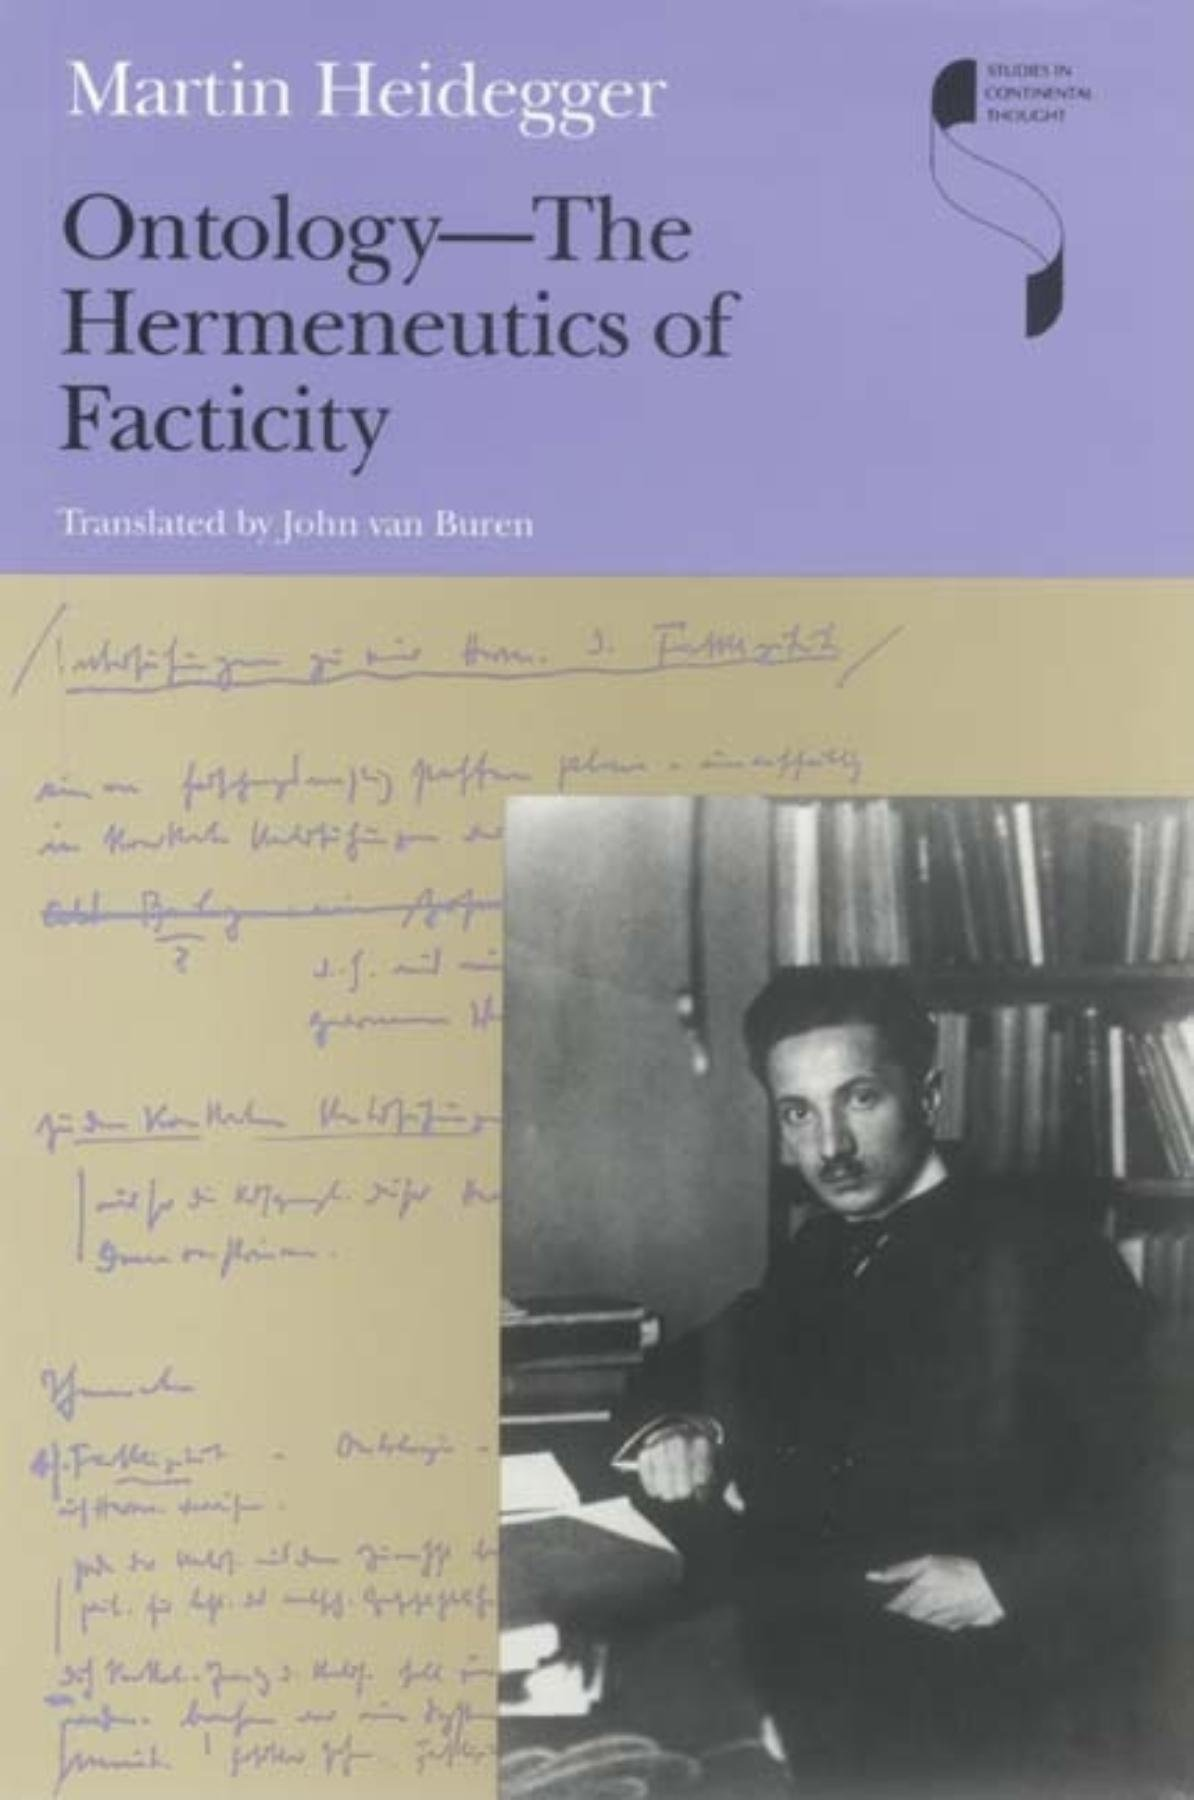 Ontology--The Hermeneutics of Facticity (Studies in Continental Thought):  Martin Heidegger, John van Buren: 9780253220219: Traveller Location: Books